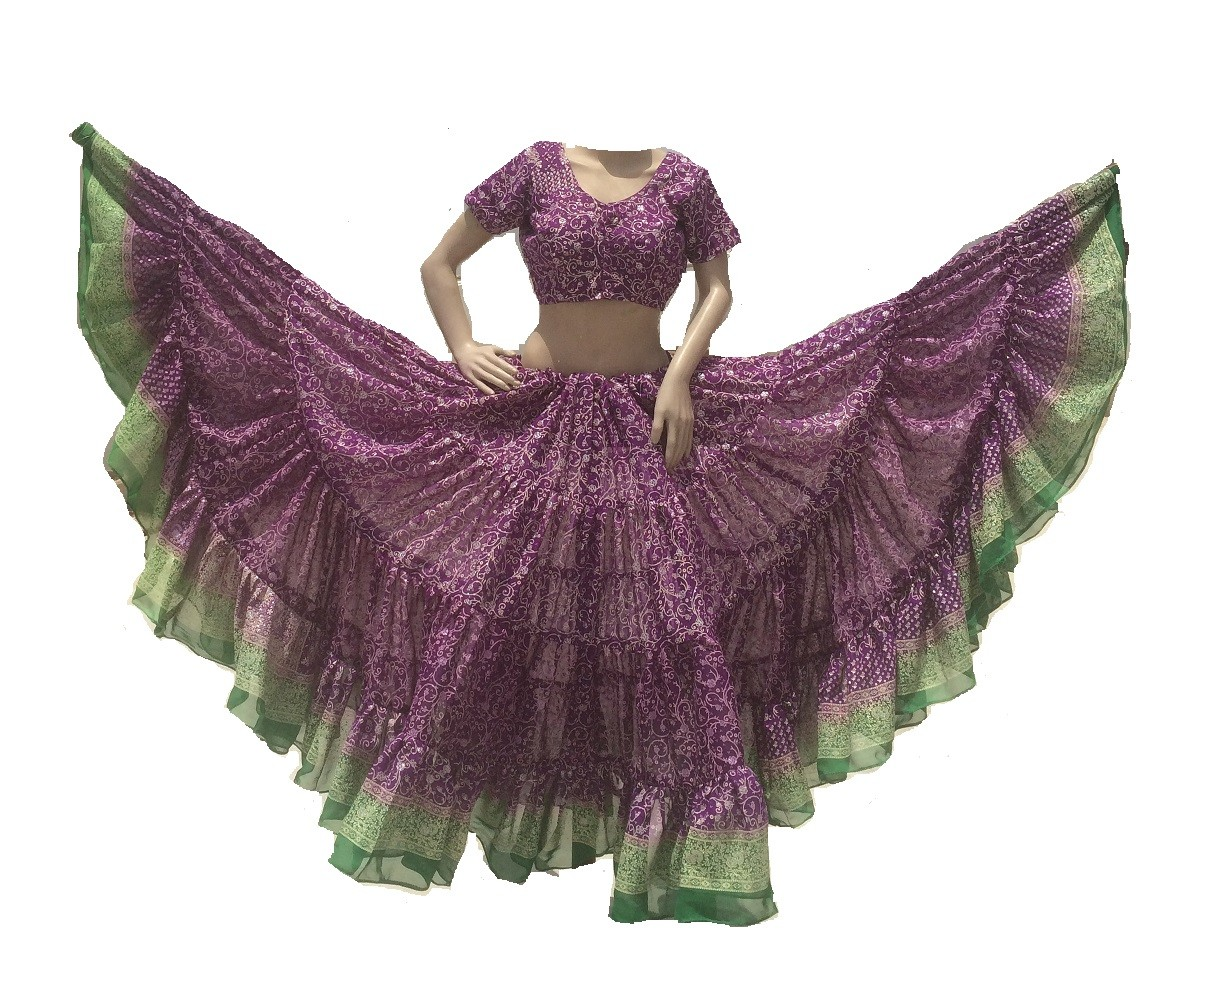 Matching choli can be made like this image in $25 extra